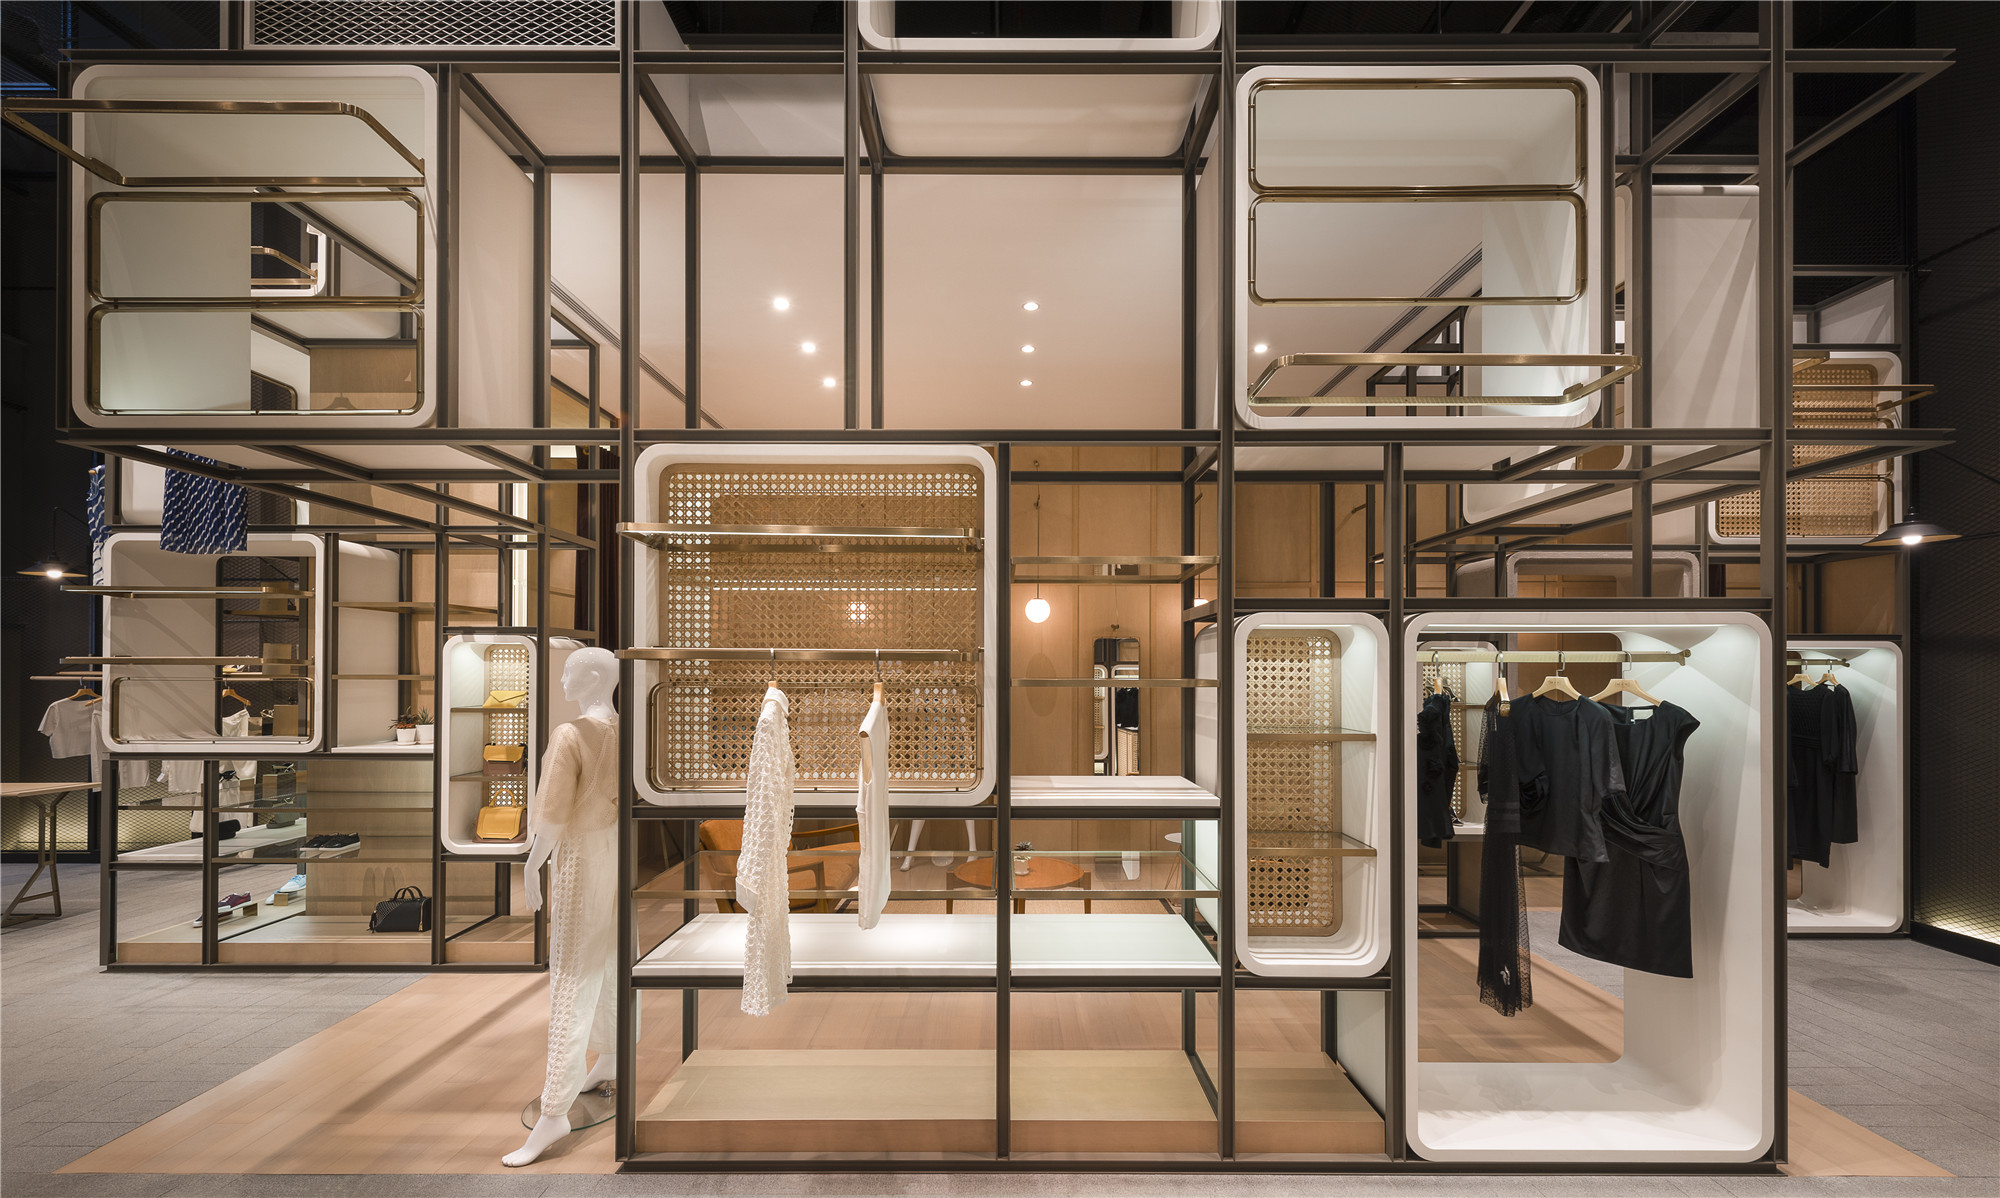 Business Plan Boutique Decoration The Modular Lilong Lukstudio Archdaily